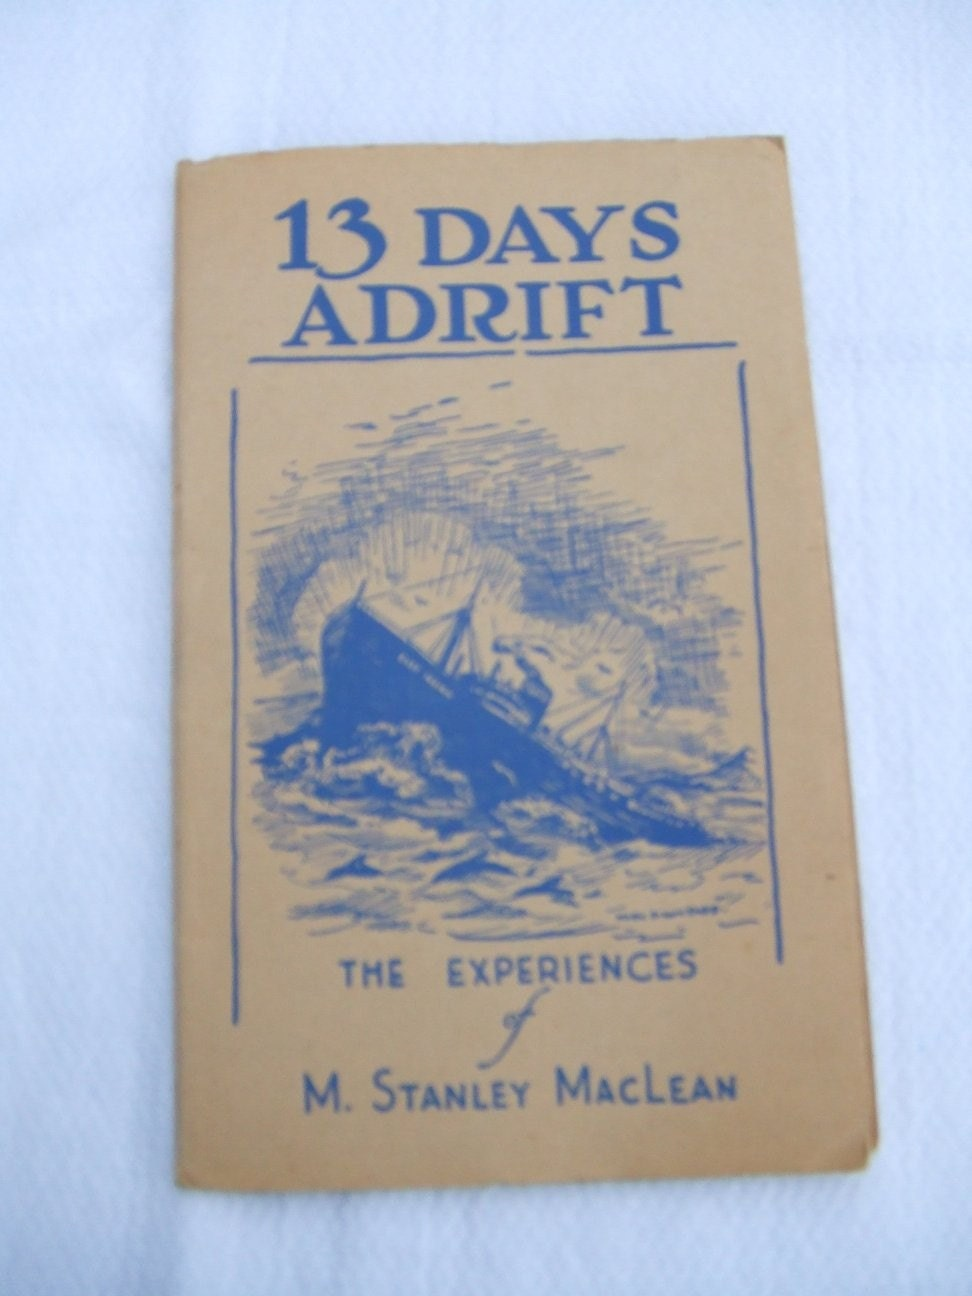 13 Days Adrift by M.Stanley Maclean,1943 Illustrated Vintage Paperback Book